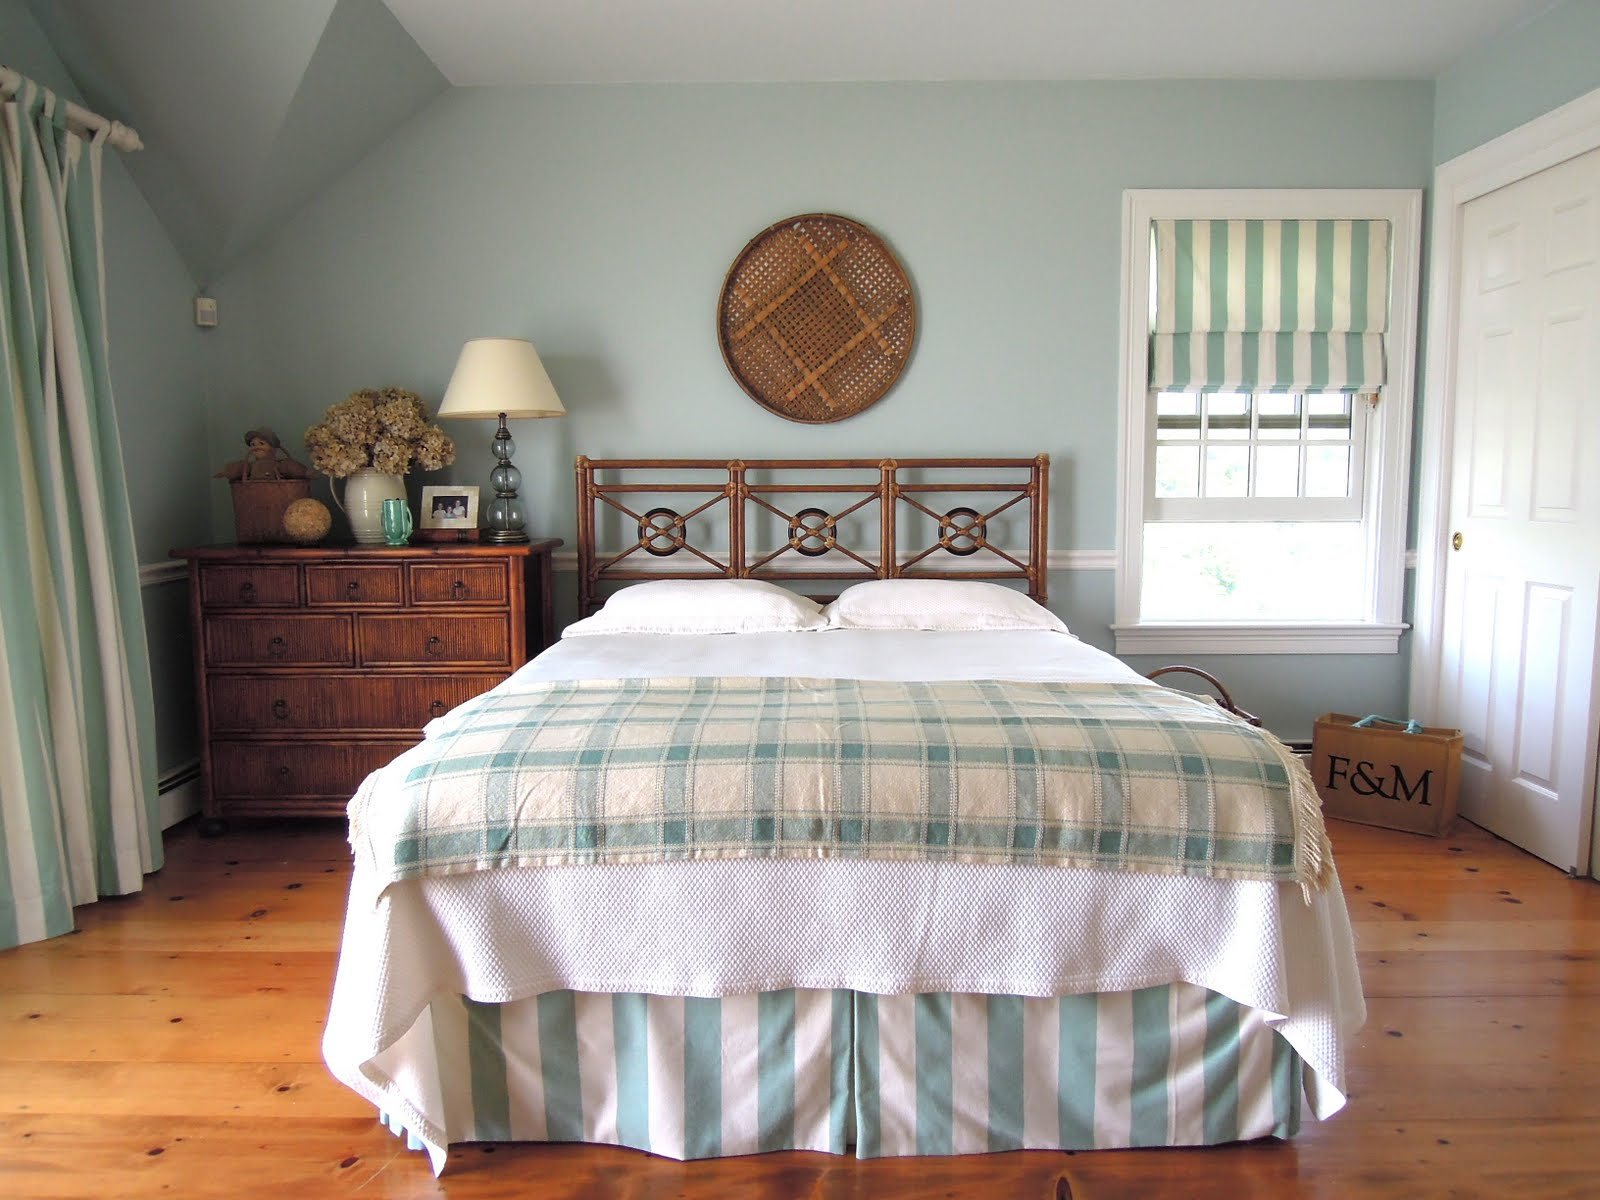 Antiqueaholics the master bedroom cape cod - Cape cod style bedroom image ...